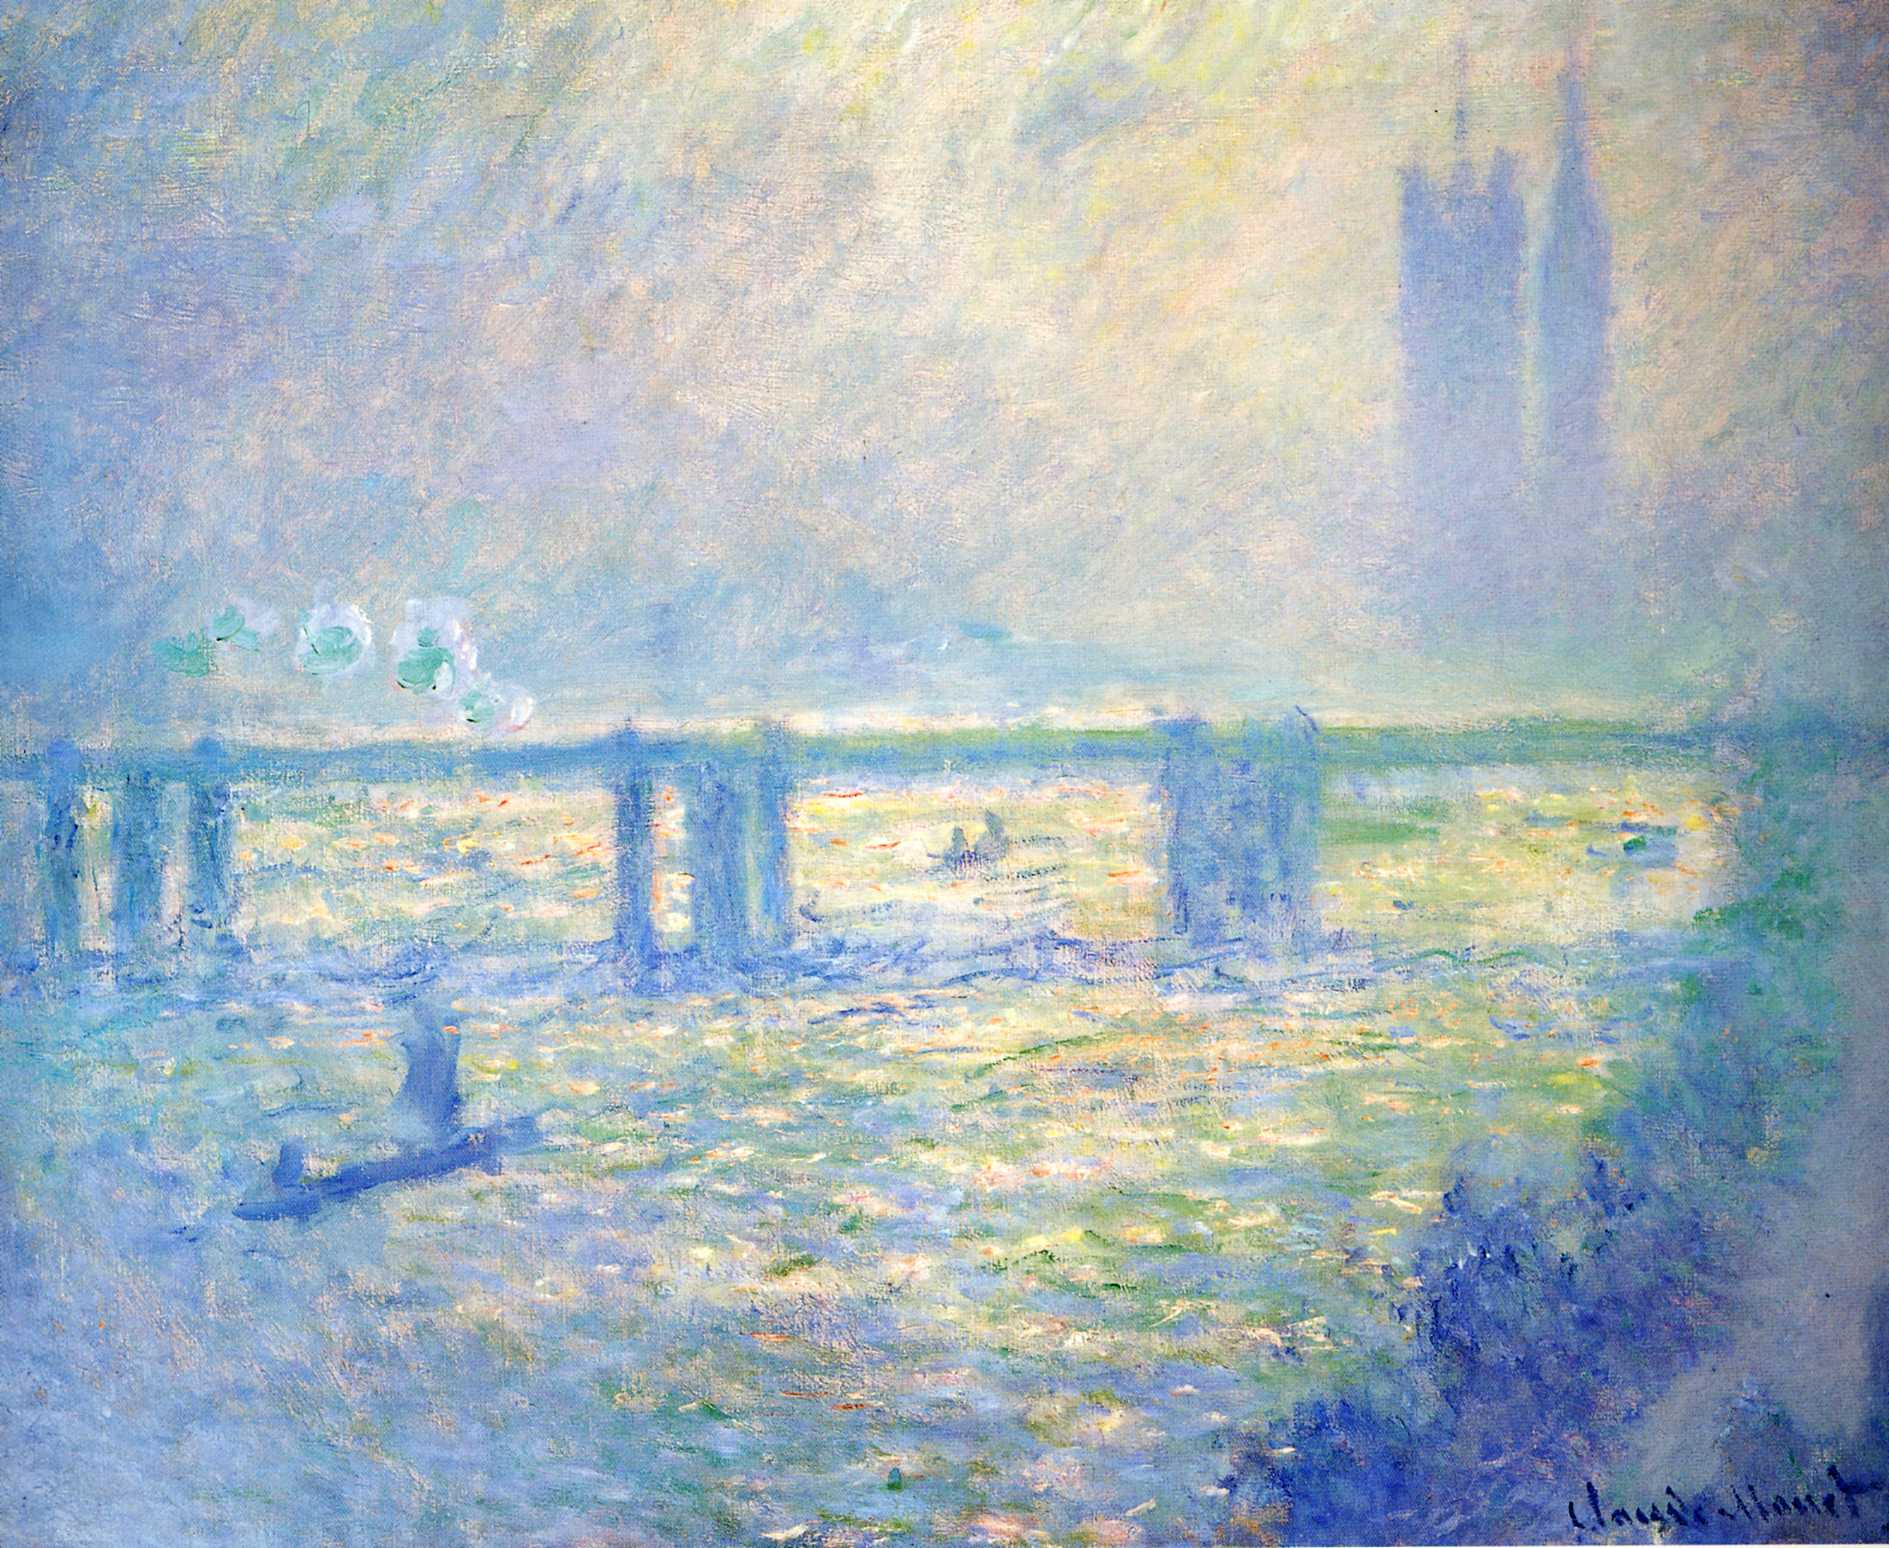 http://uploads6.wikipaintings.org/images/claude-monet/charing-cross-bridge-03.jpg